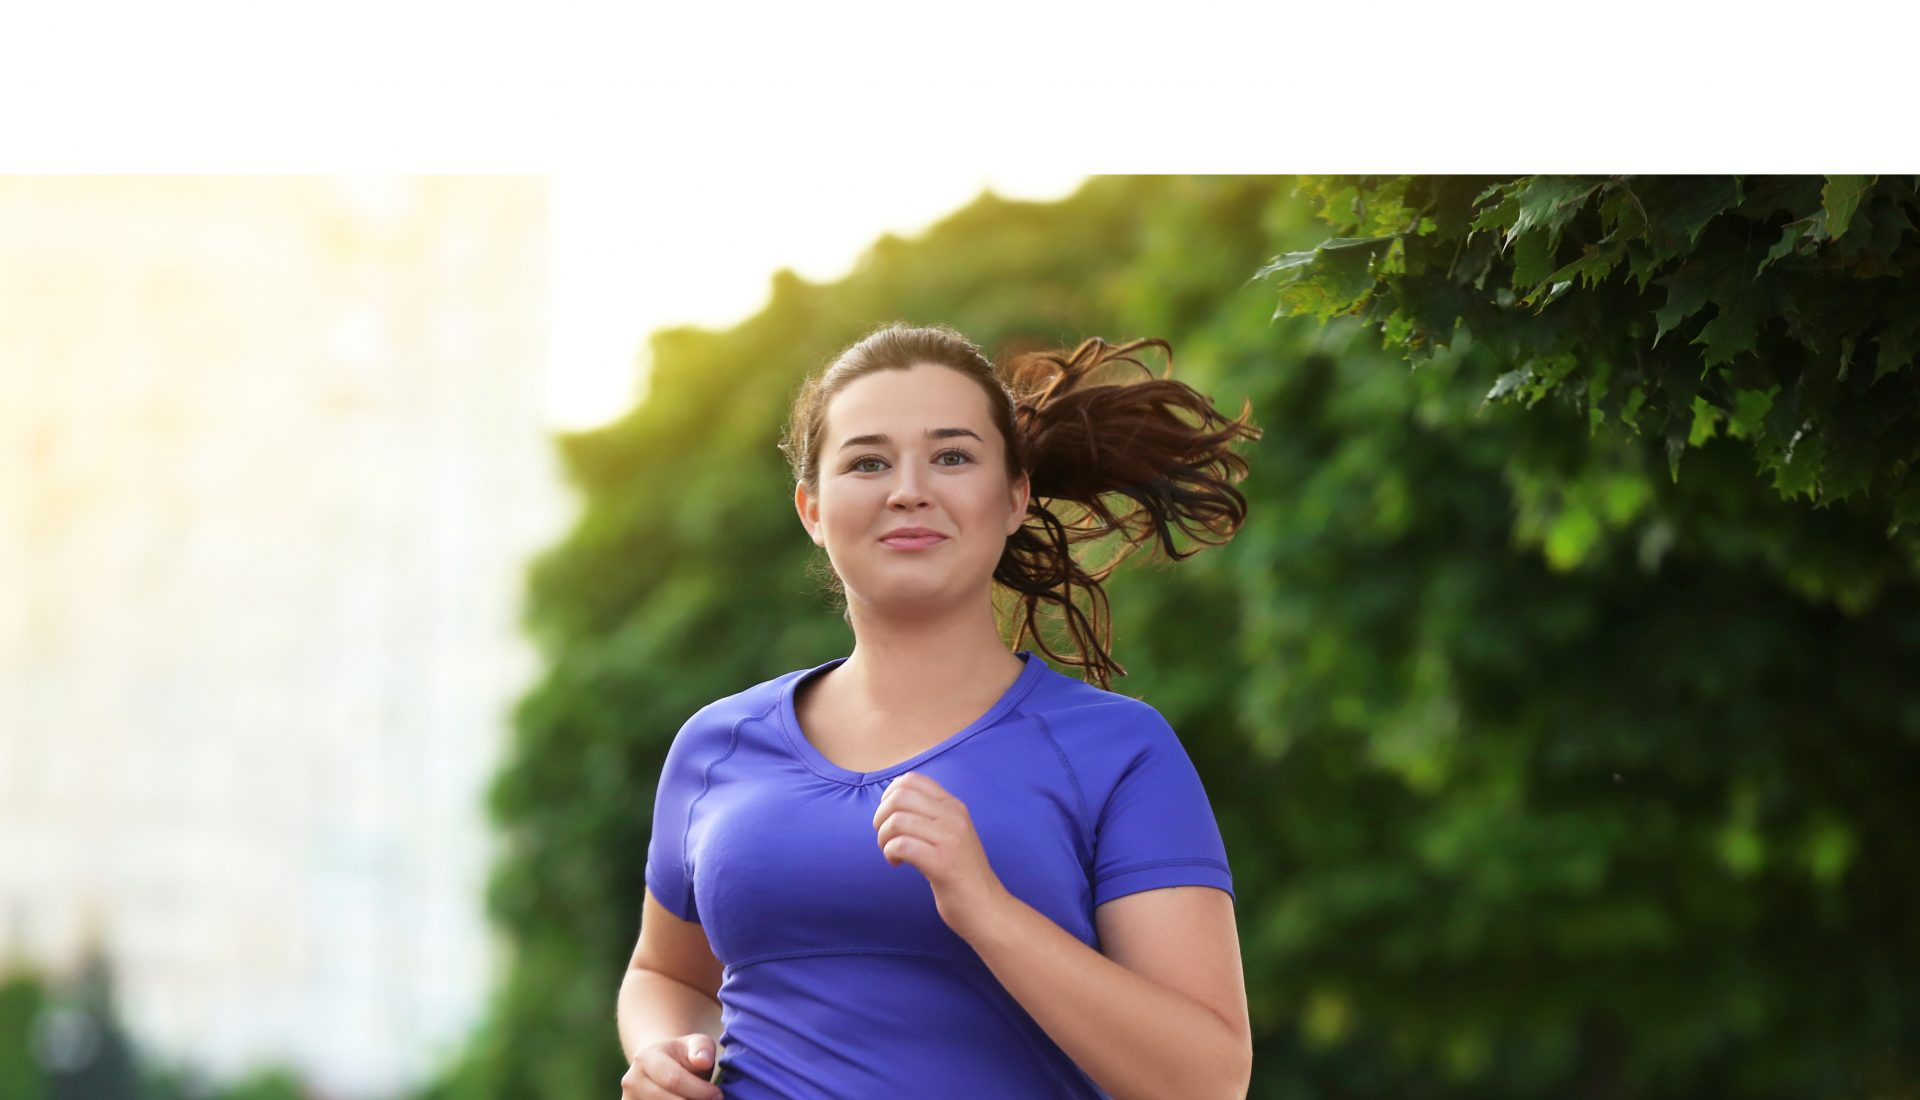 Young woman with dark hair running, tree in background